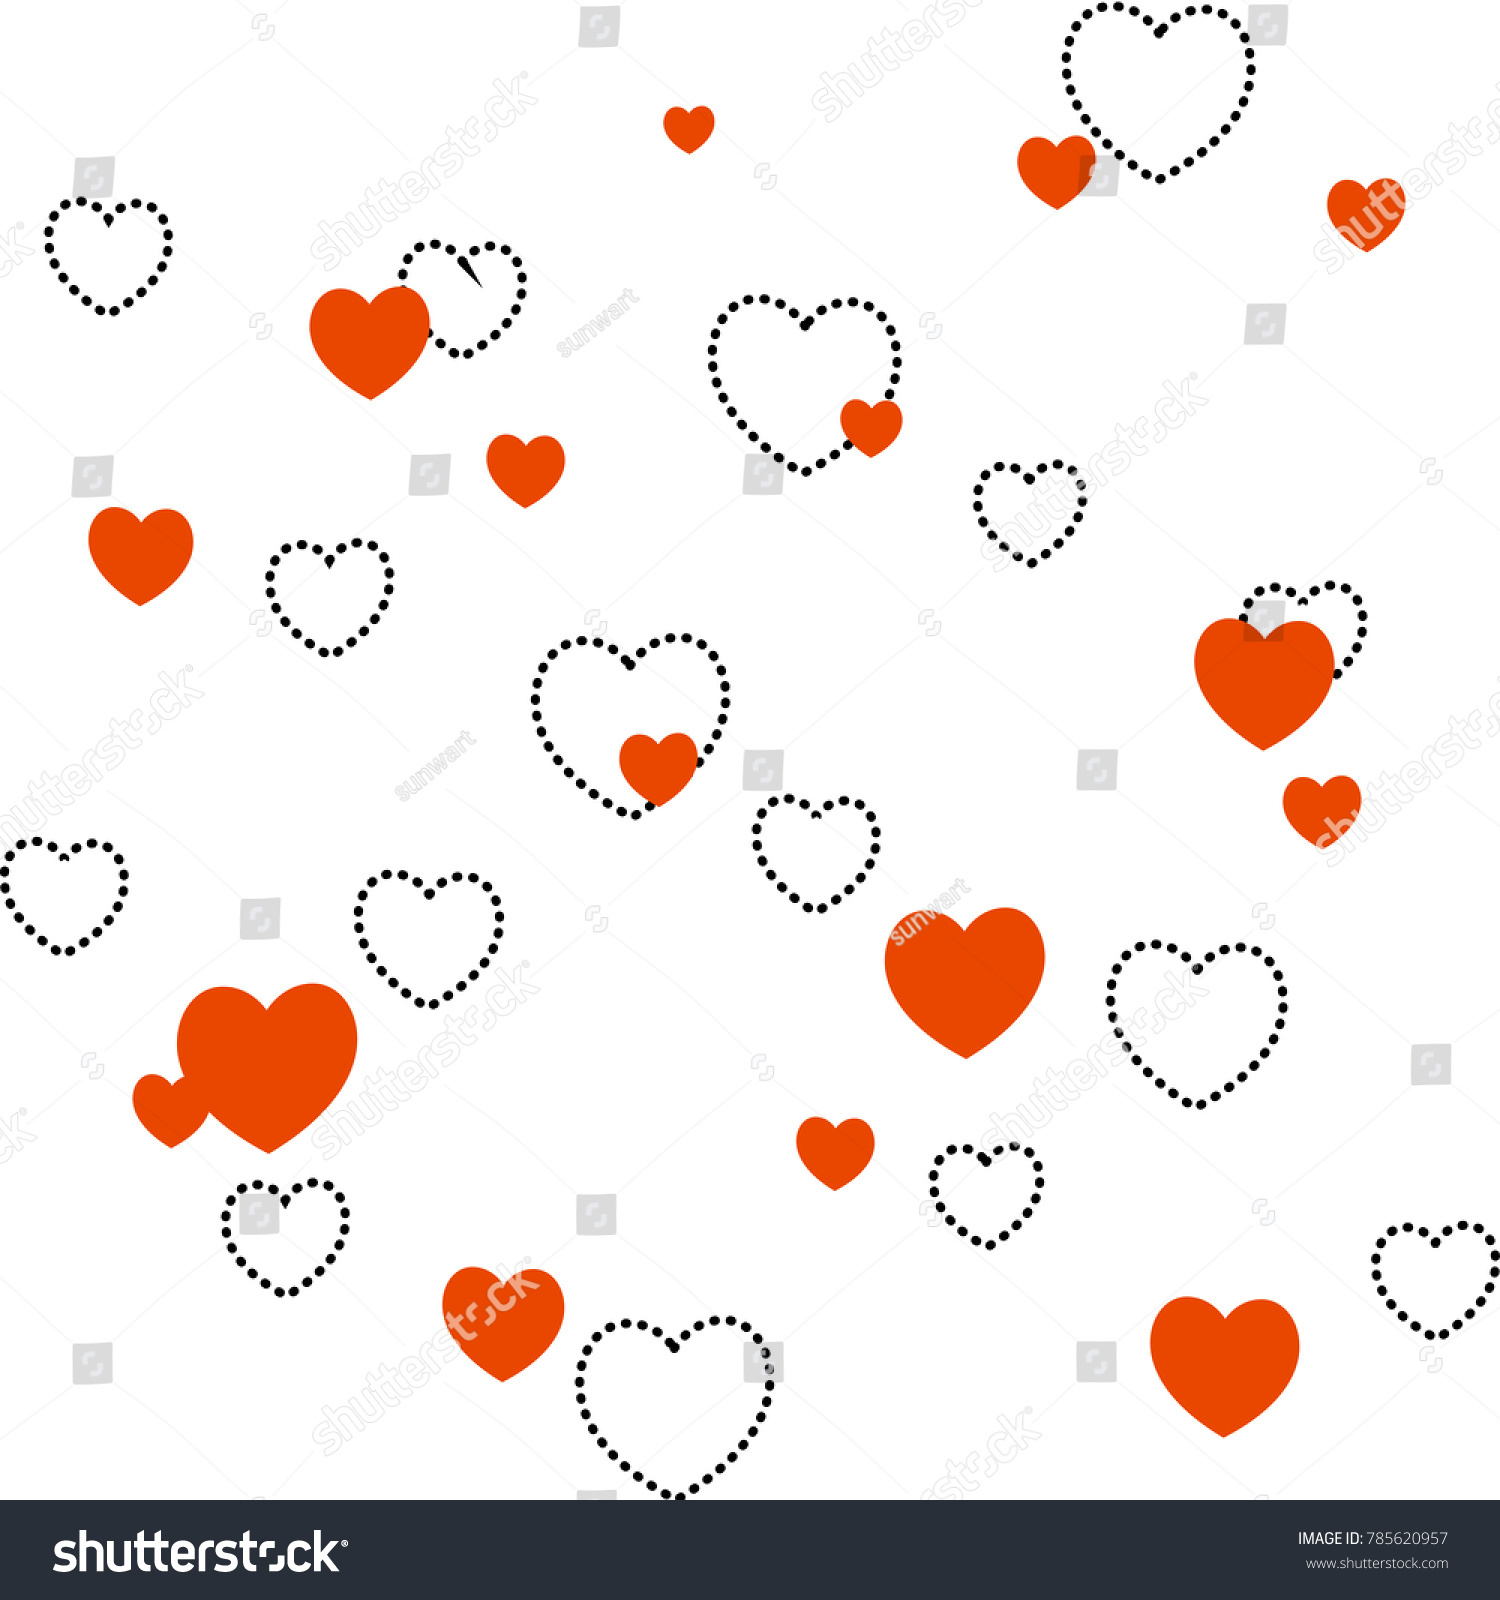 Vector seamless heart pattern love symbol stock vector 785620957 vector seamless heart pattern love symbol graphic background red and black doted line hearts buycottarizona Images